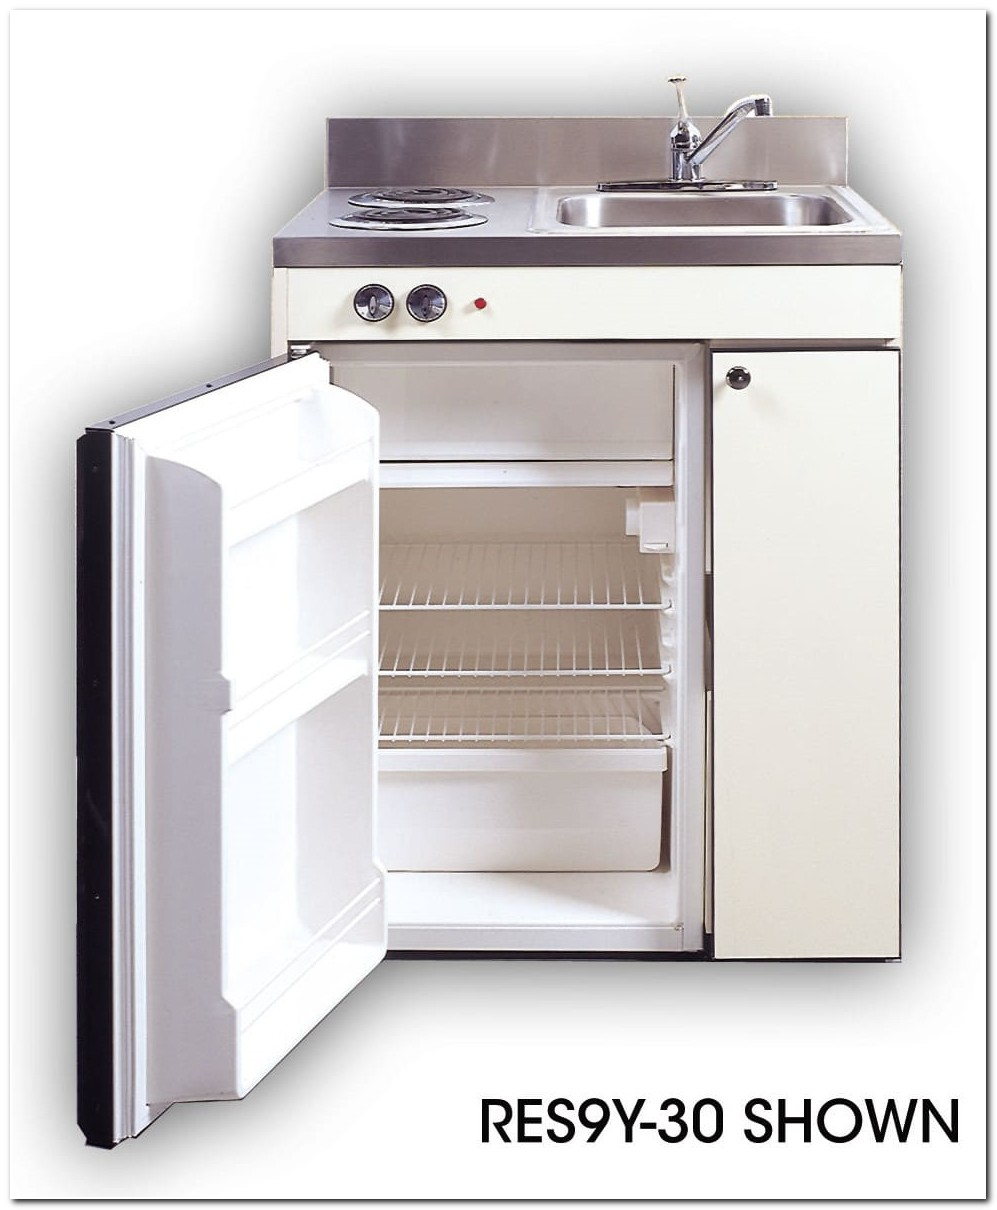 Acme Stove Refrigerator Sink Combo